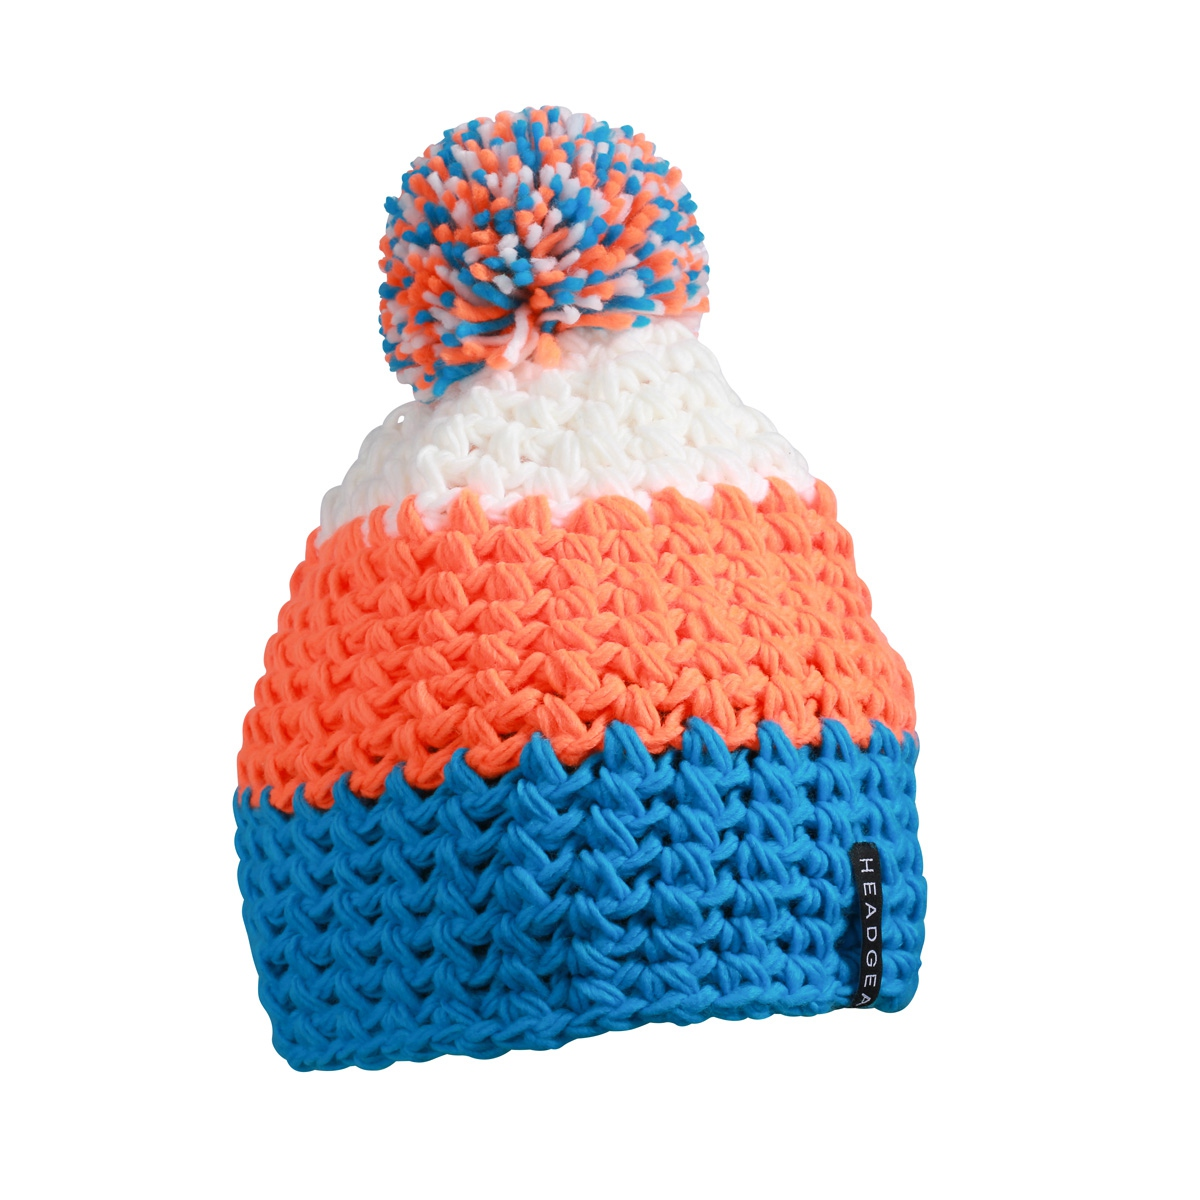 Bonnet crocheté à pompon - MB7940 - bleu - orange - blanc